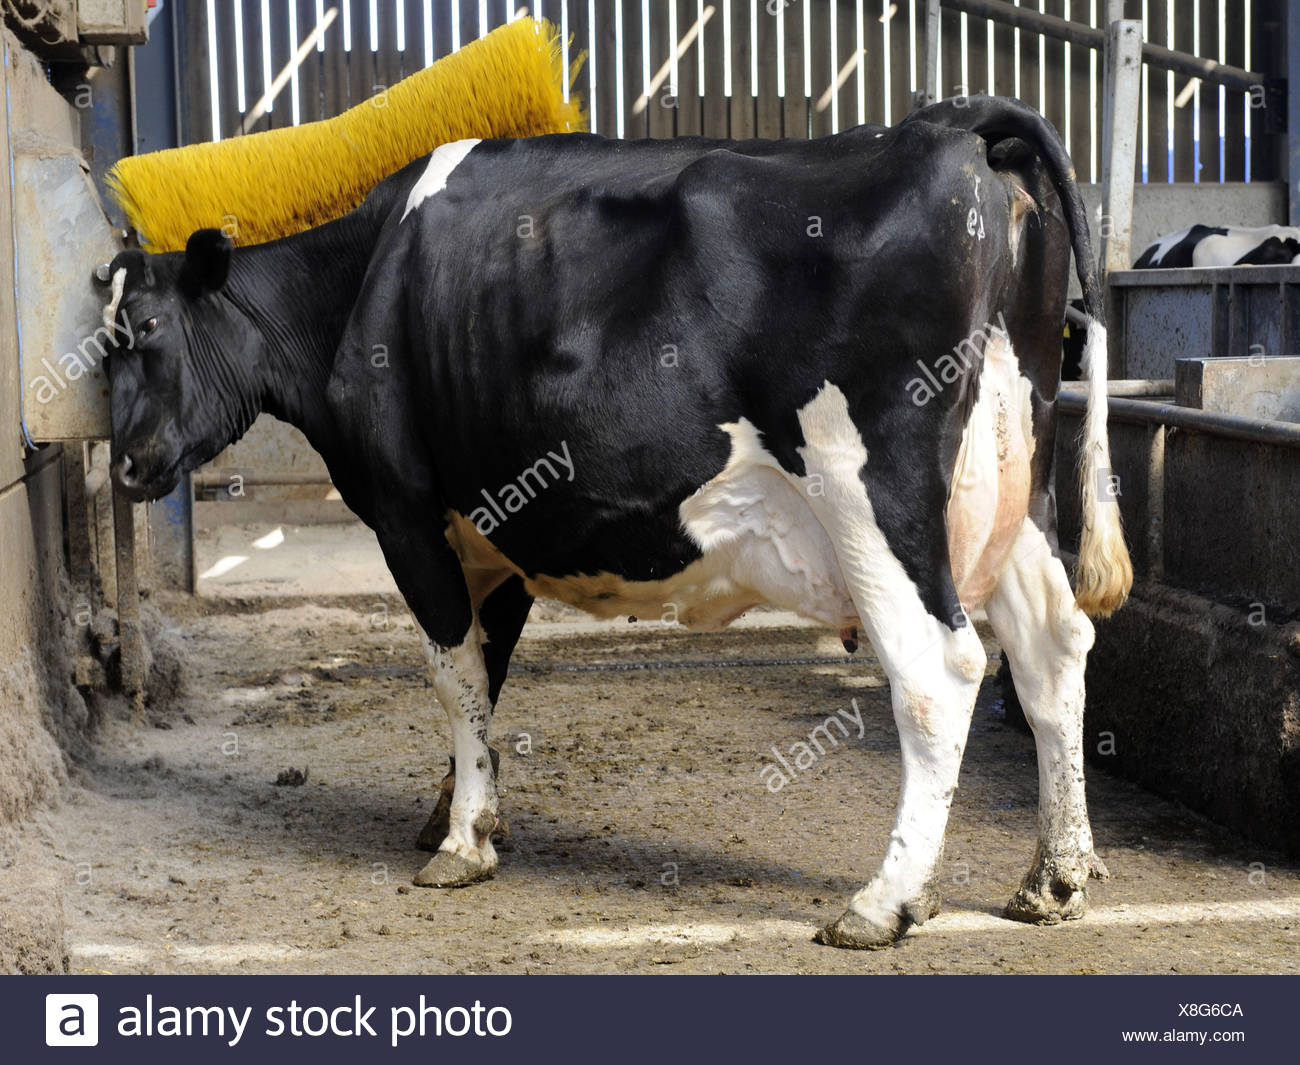 A friesian cow having his back scrubbed - Stock Image